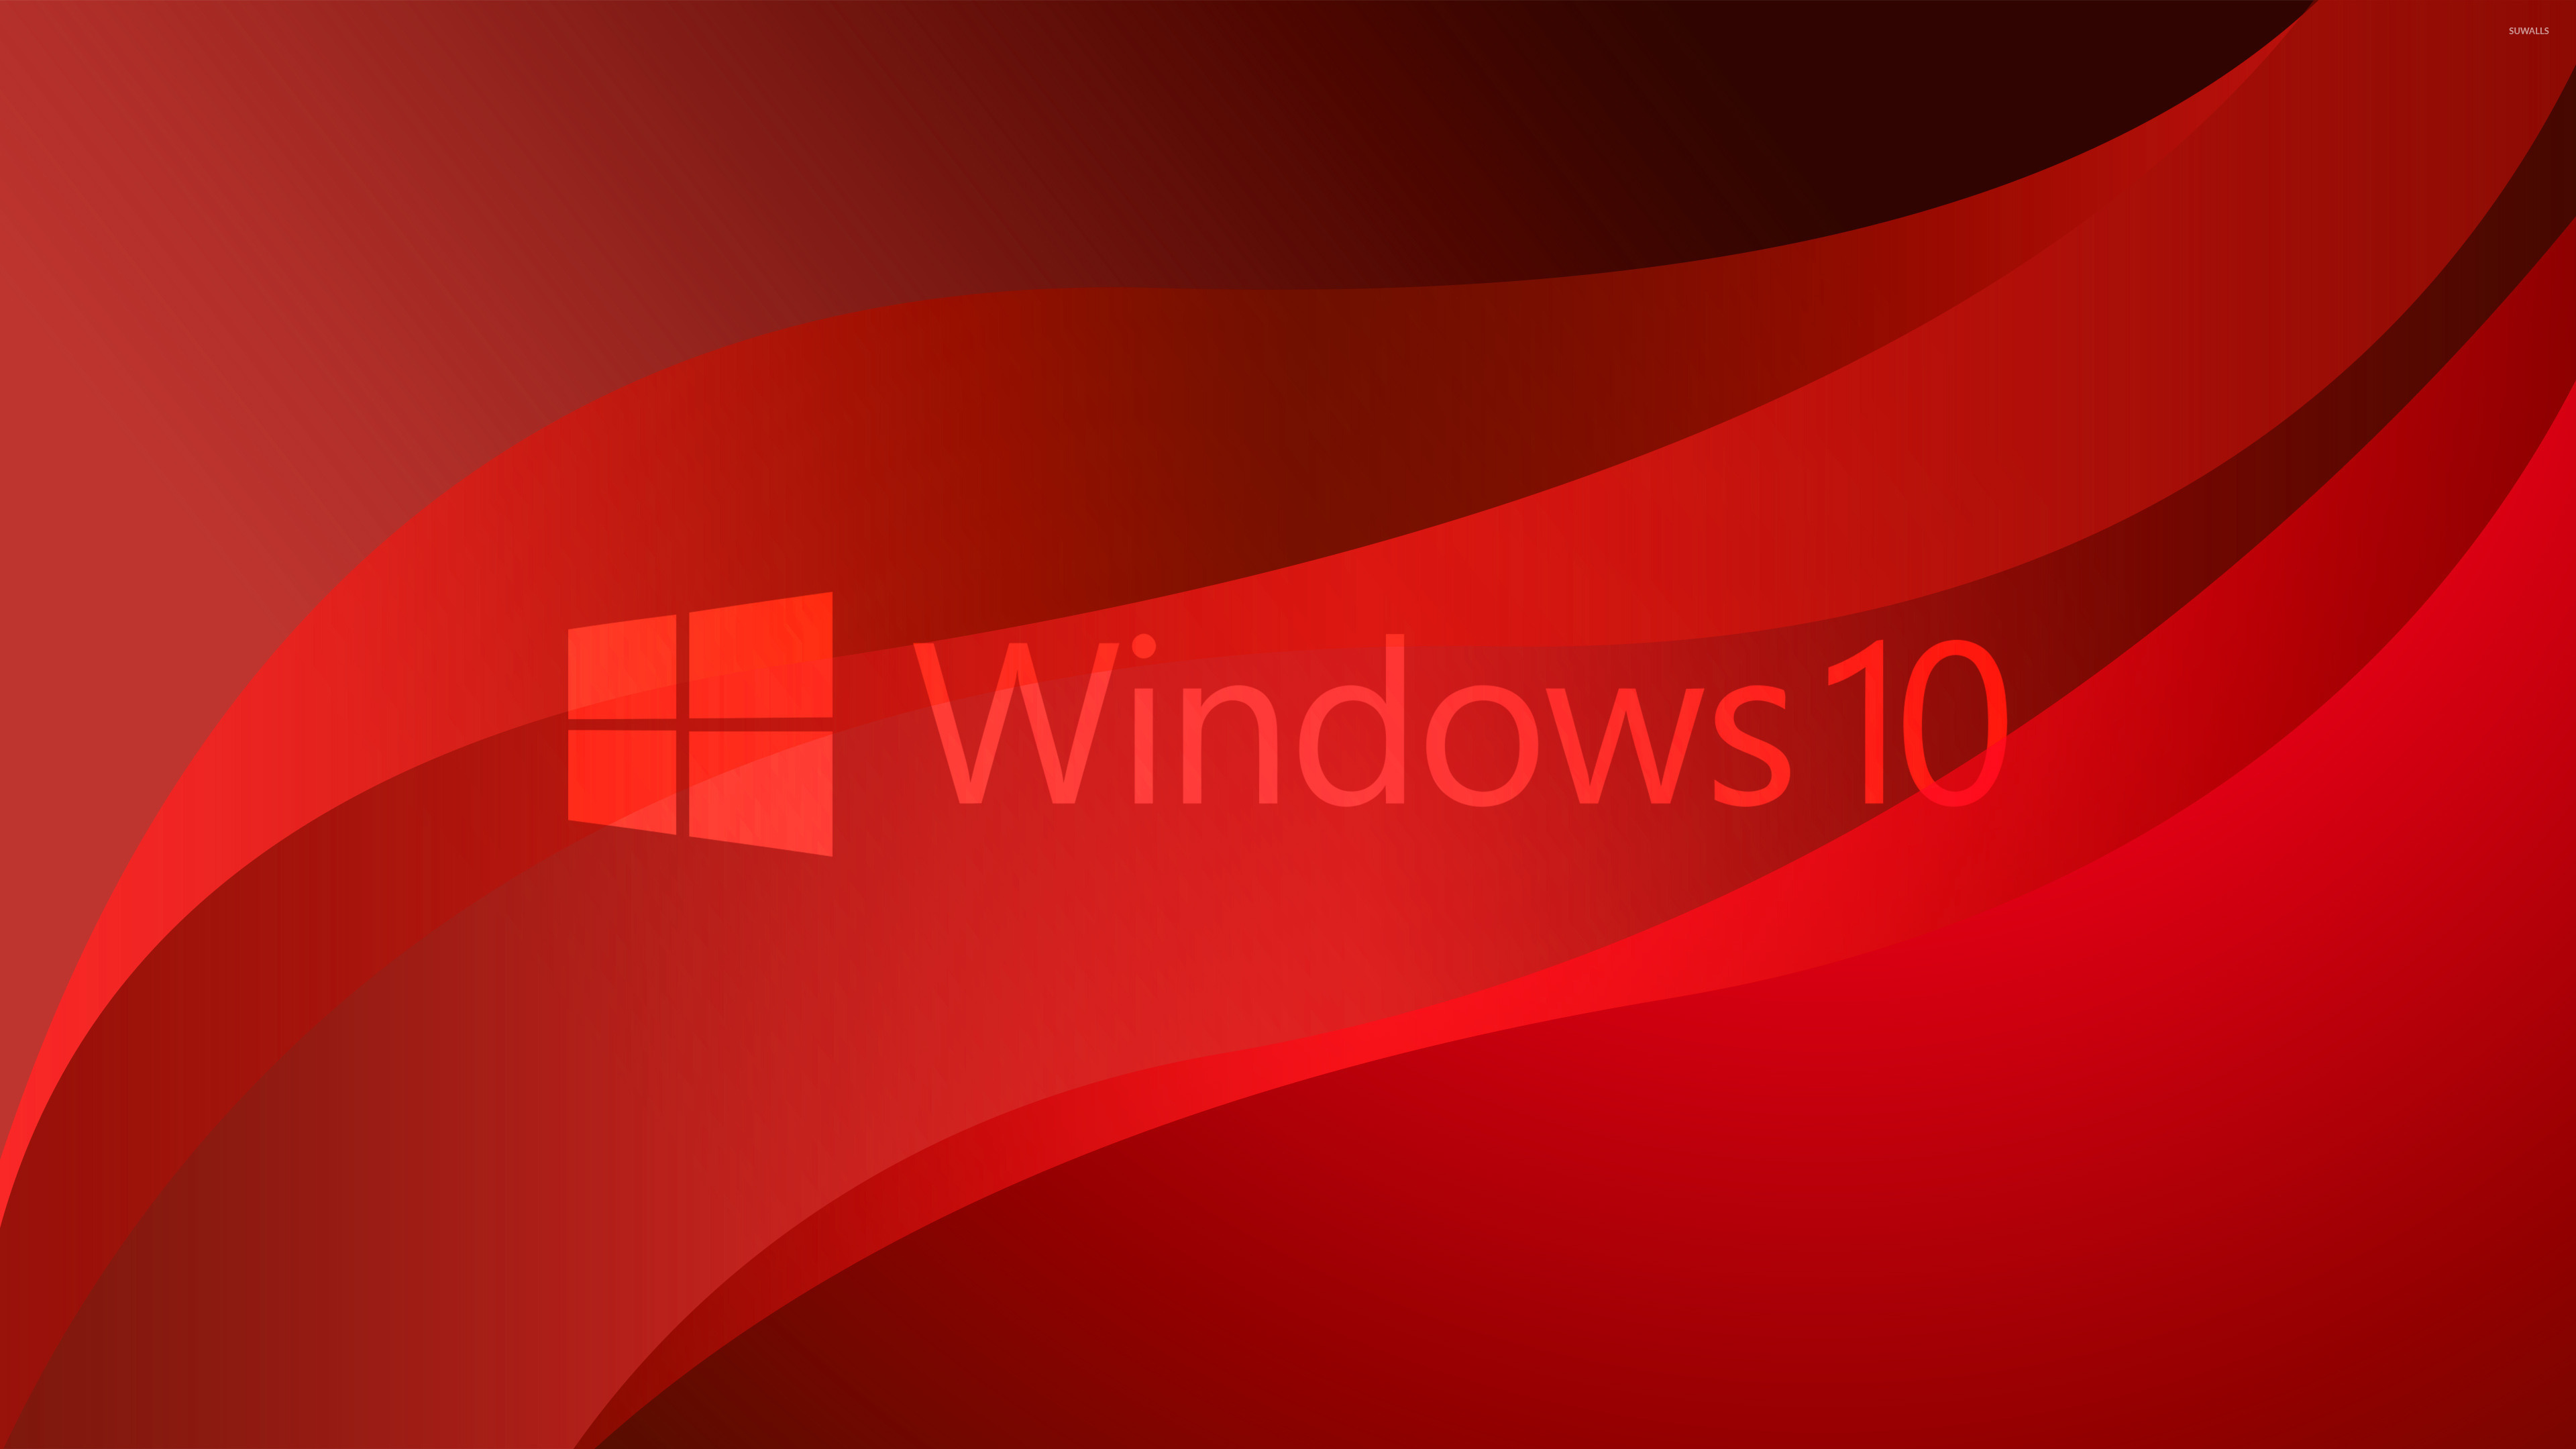 windows 10 transparent logo on red waves wallpaper